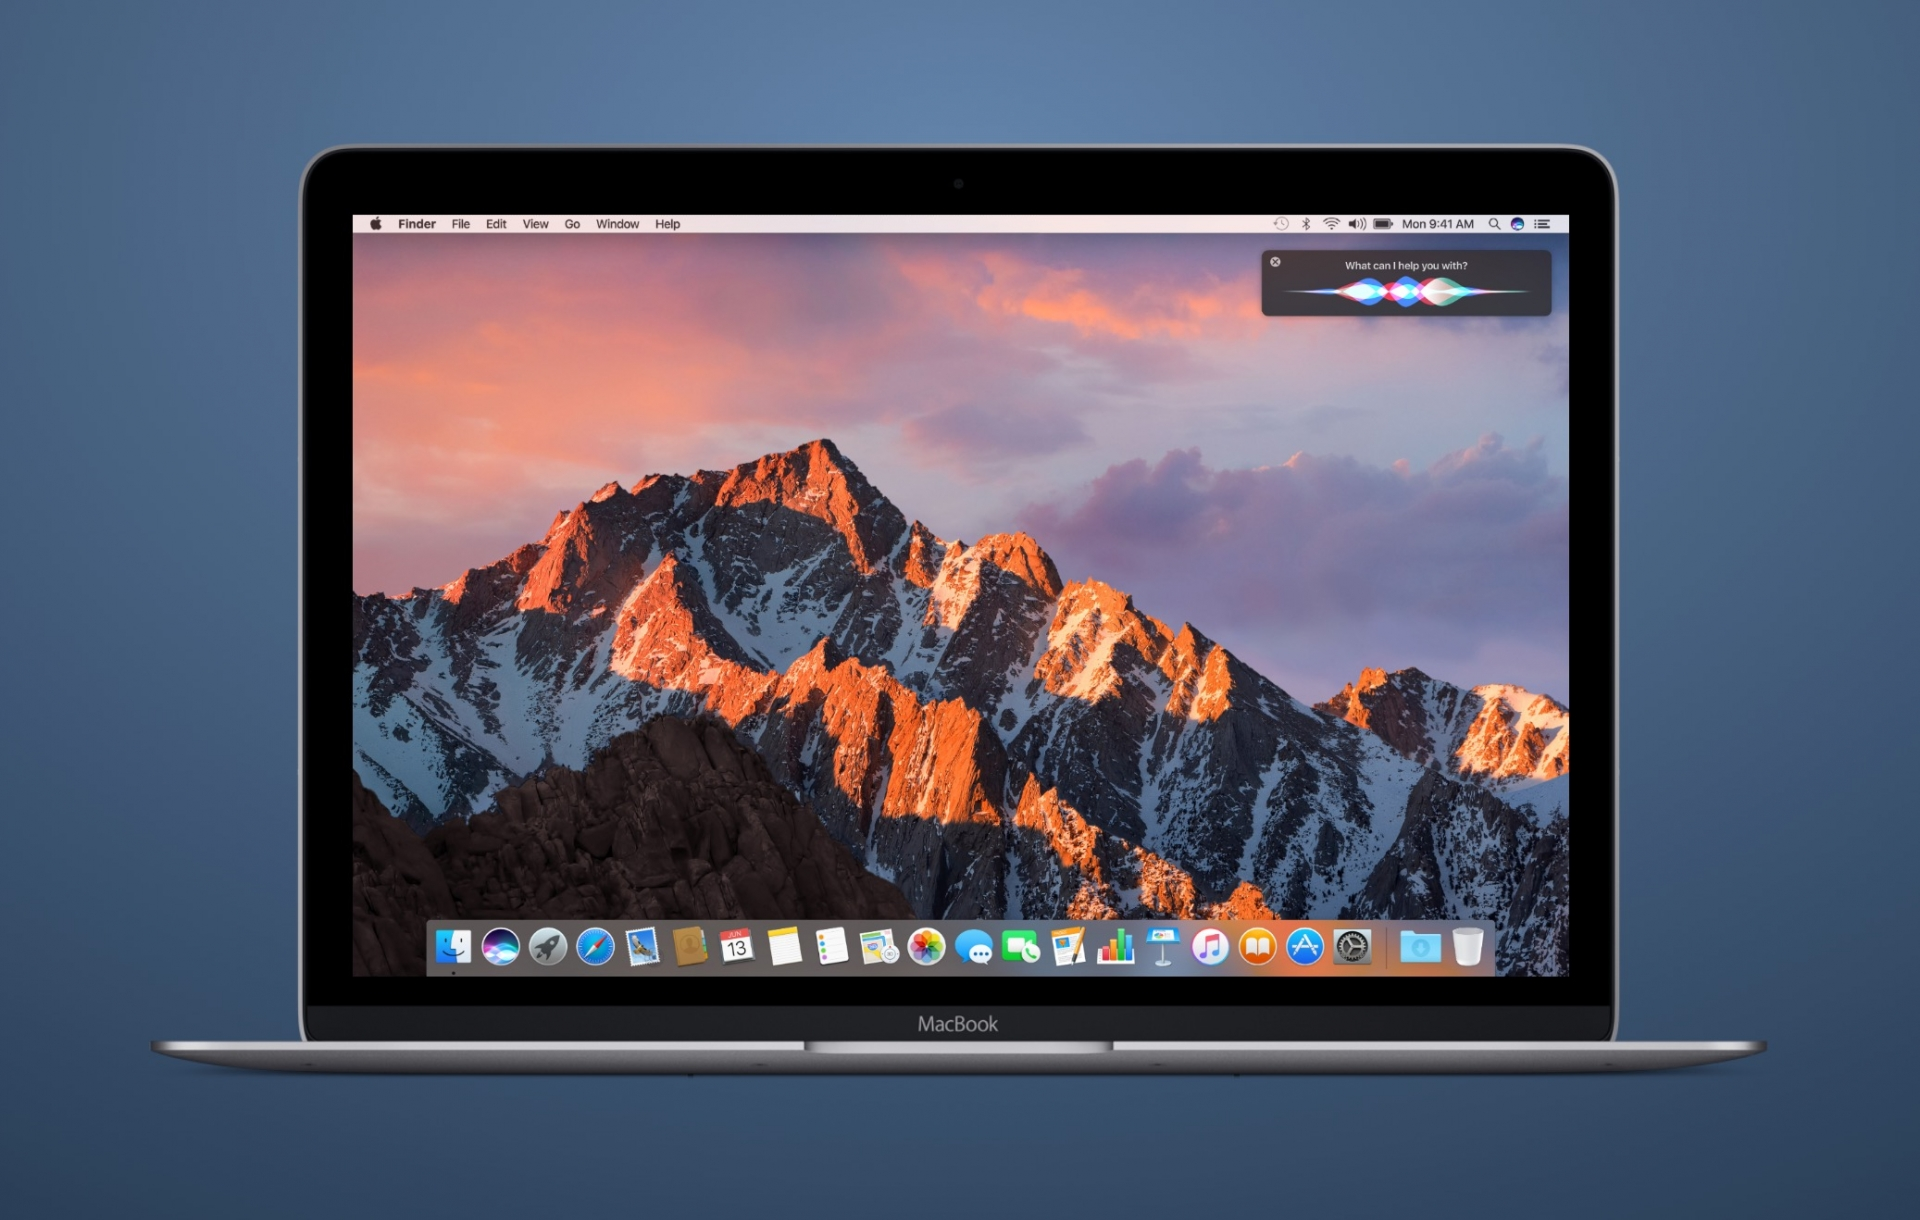 Apple Released macOS Sierra 10.12.2 Beta 2 to Developers